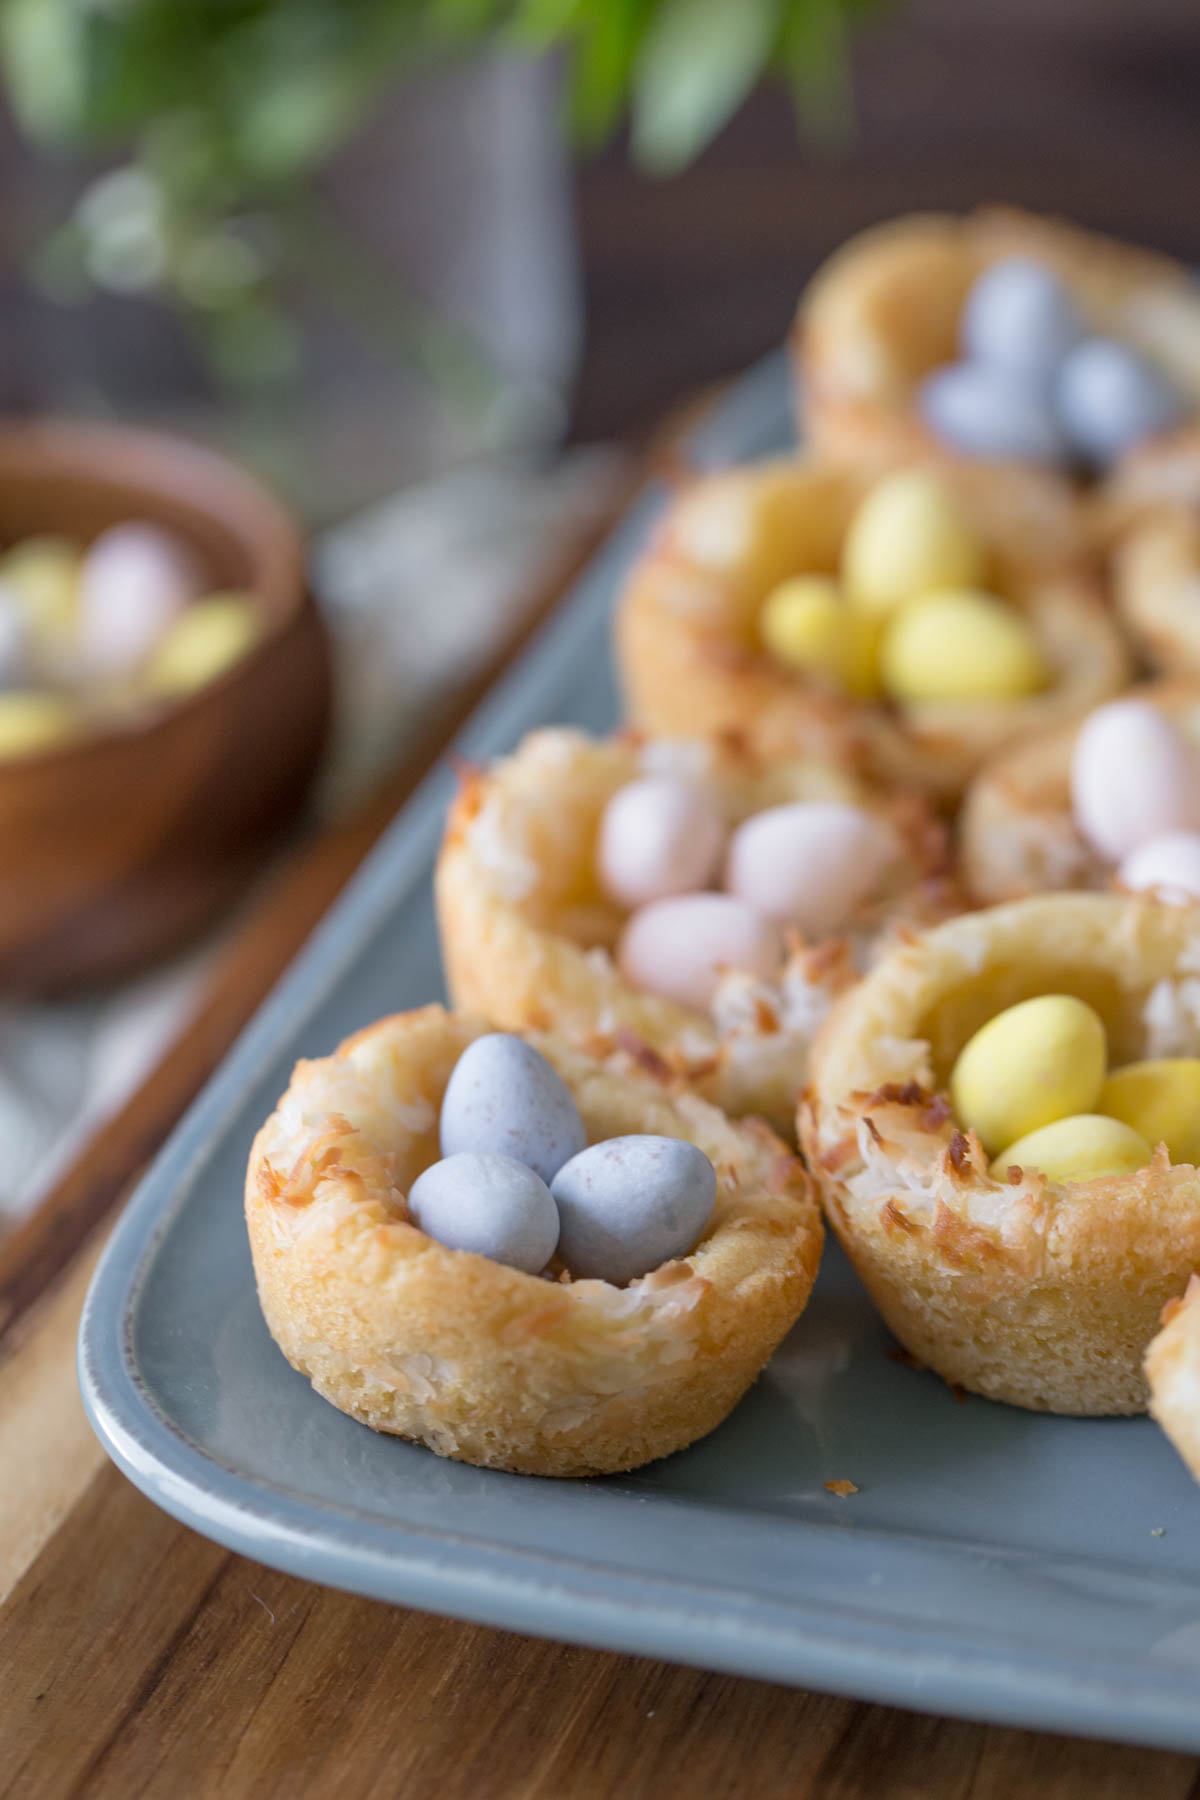 Sugar Cookie Easter Egg Nests on a serving platter.